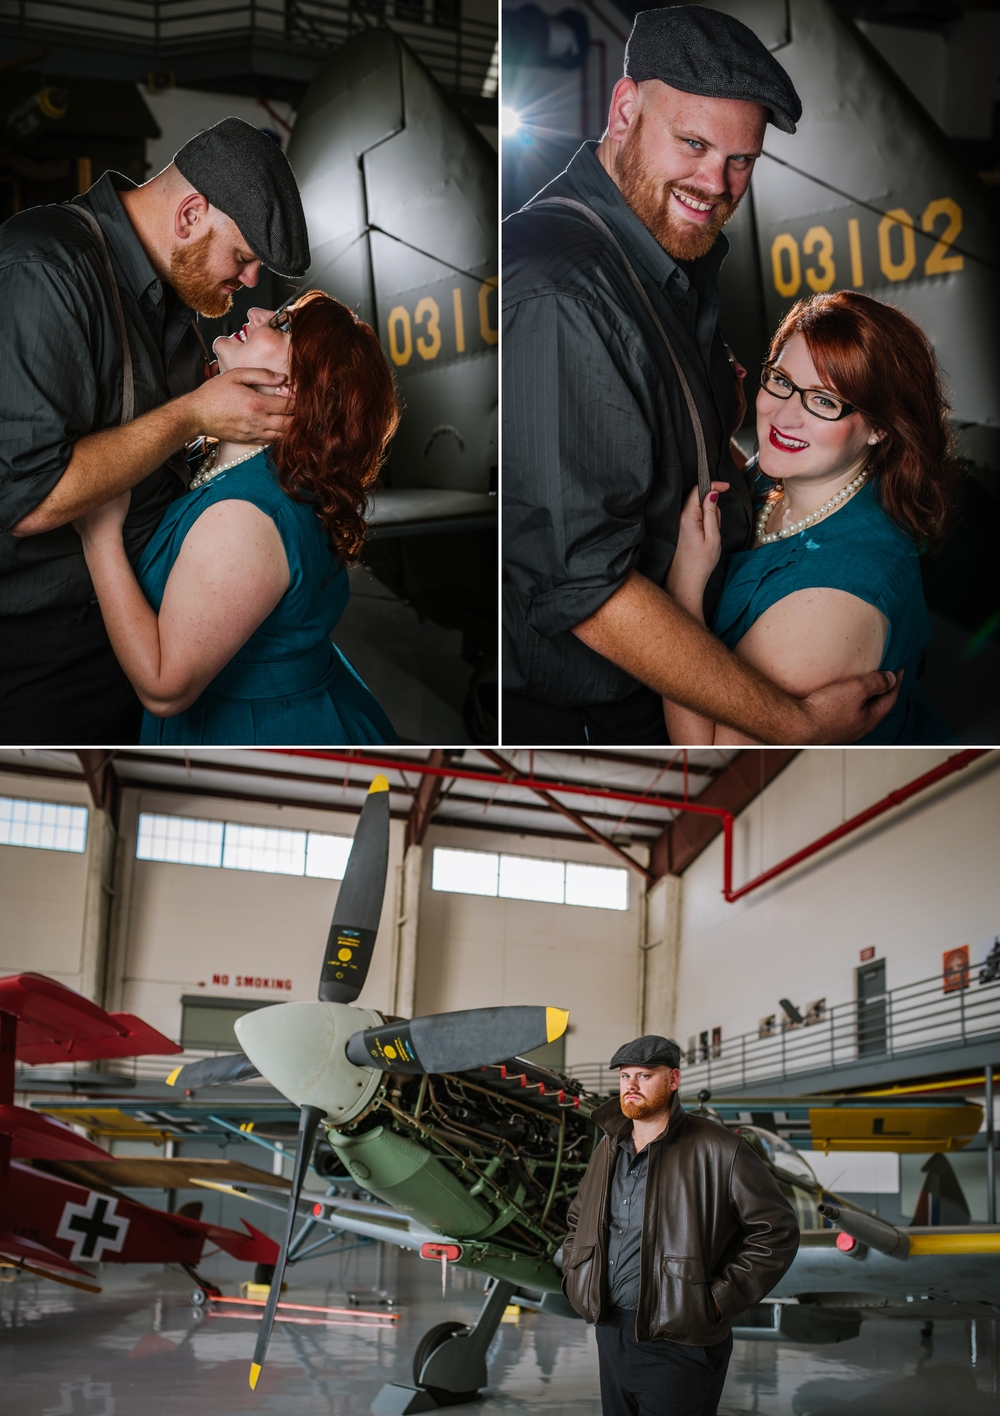 fantasy-of-flight-aviation-themed-engagement-photos-lakeland-florida_0003.jpg